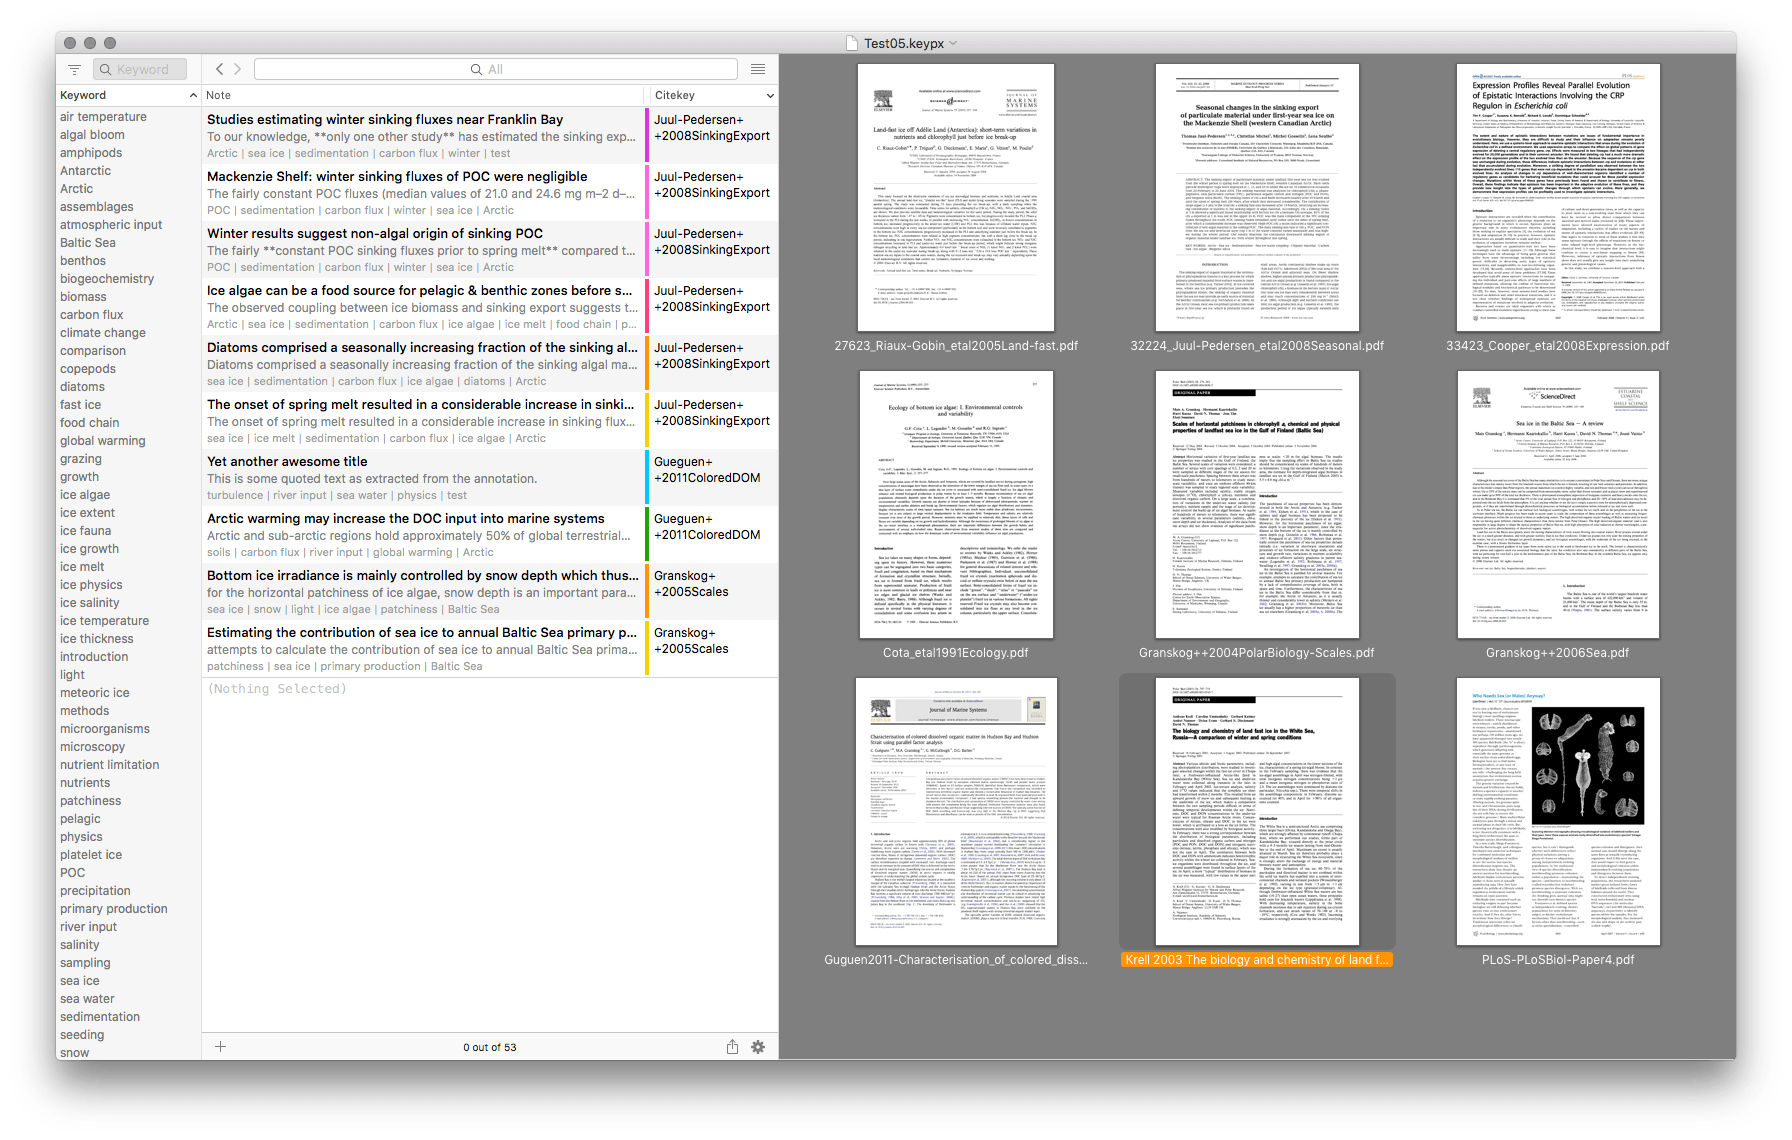 Keypoints screenshot showing list of files for all displayed notes